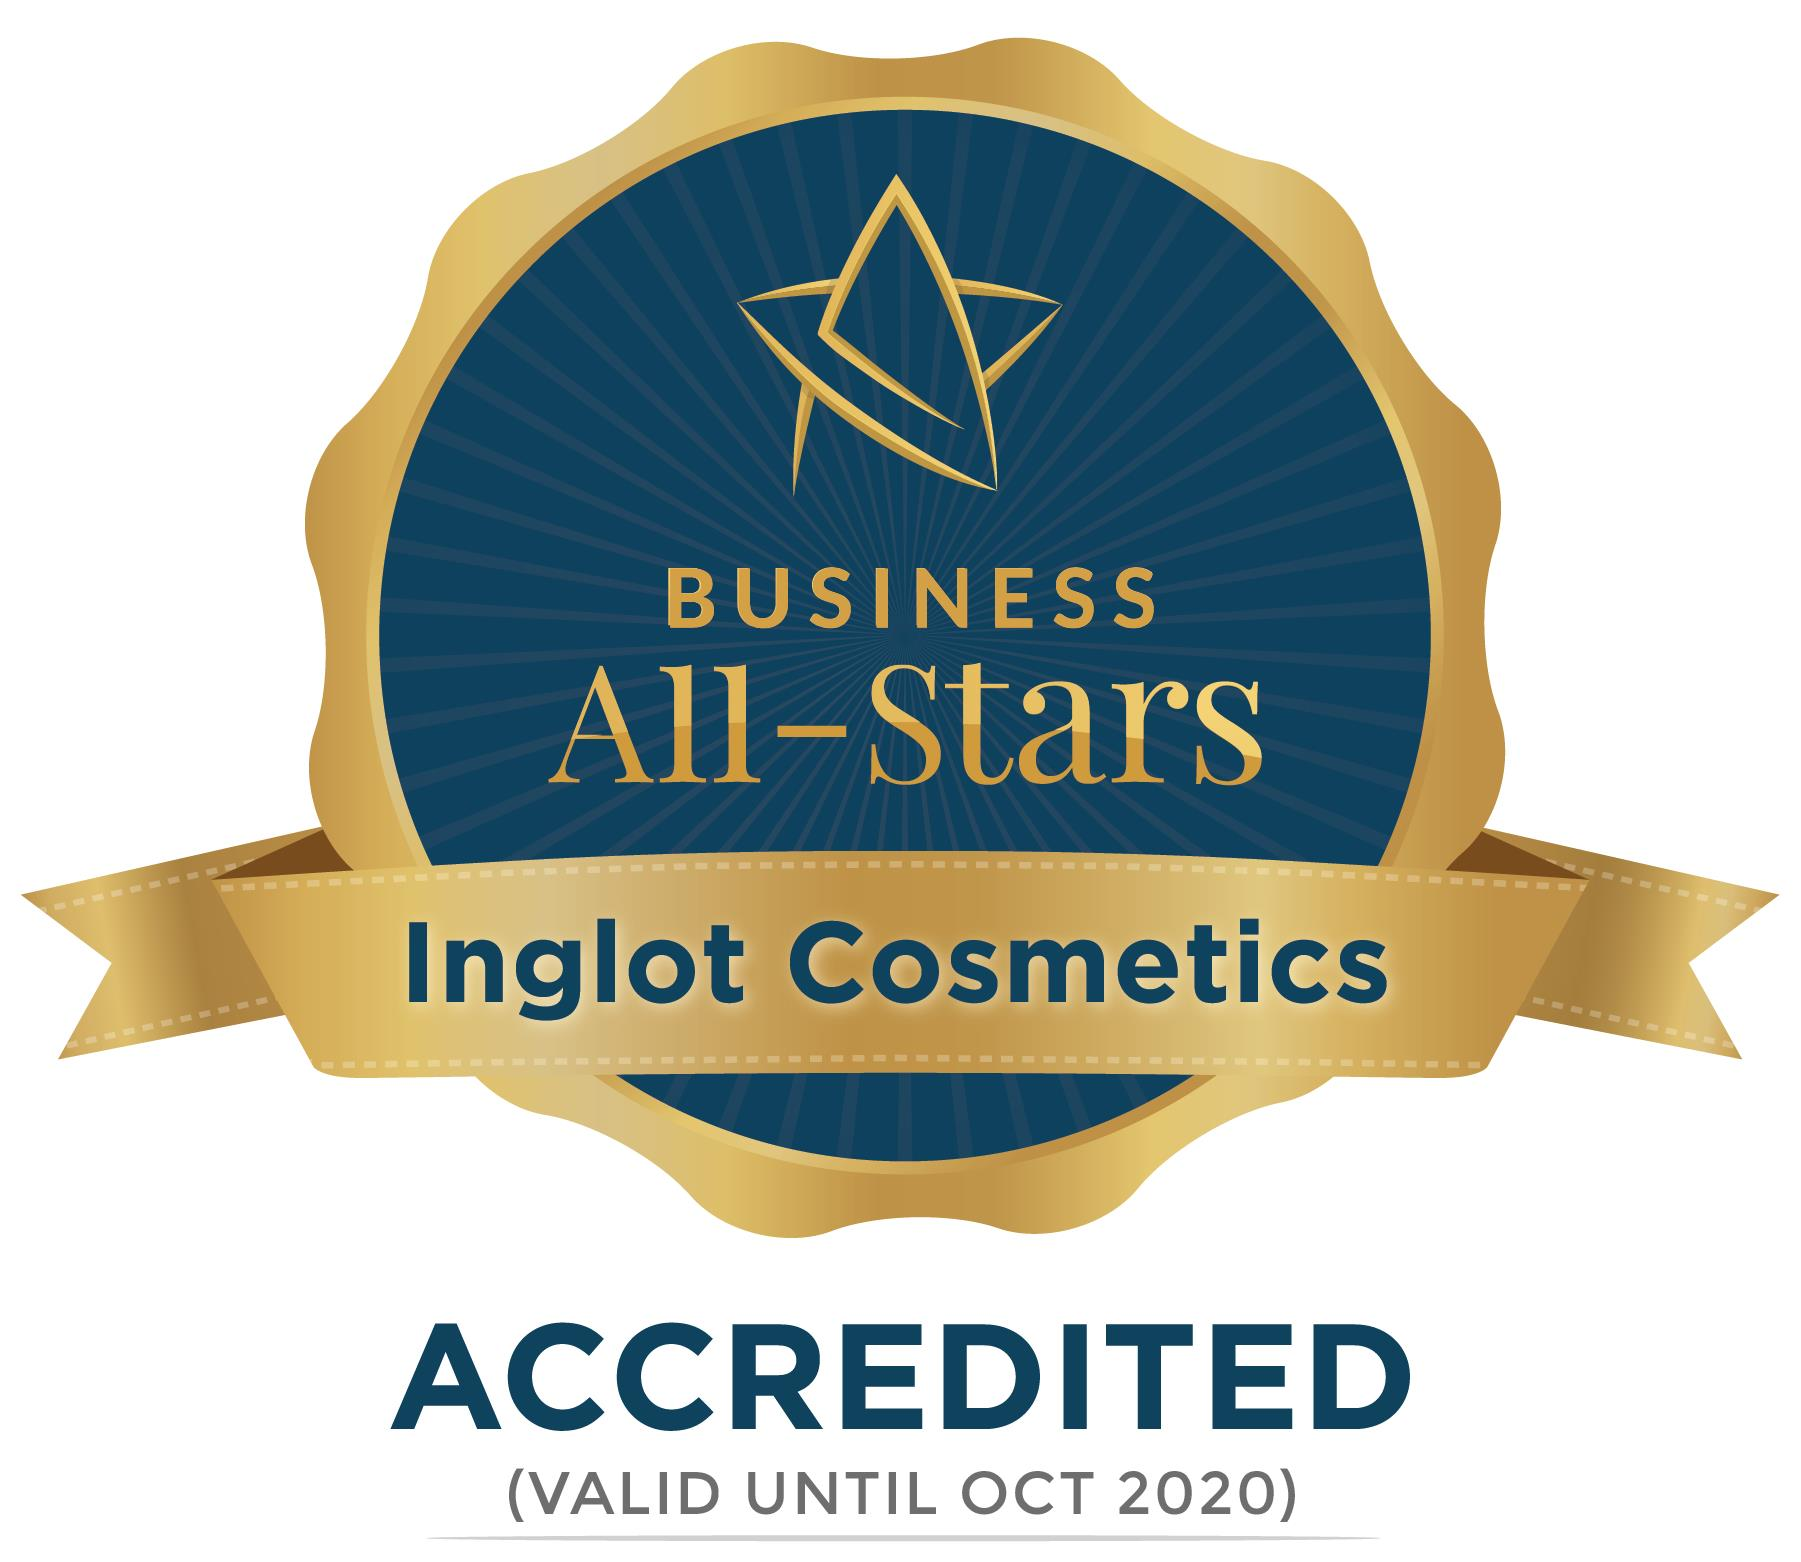 Inglot Cosmetics - Business All-Stars Accreditation